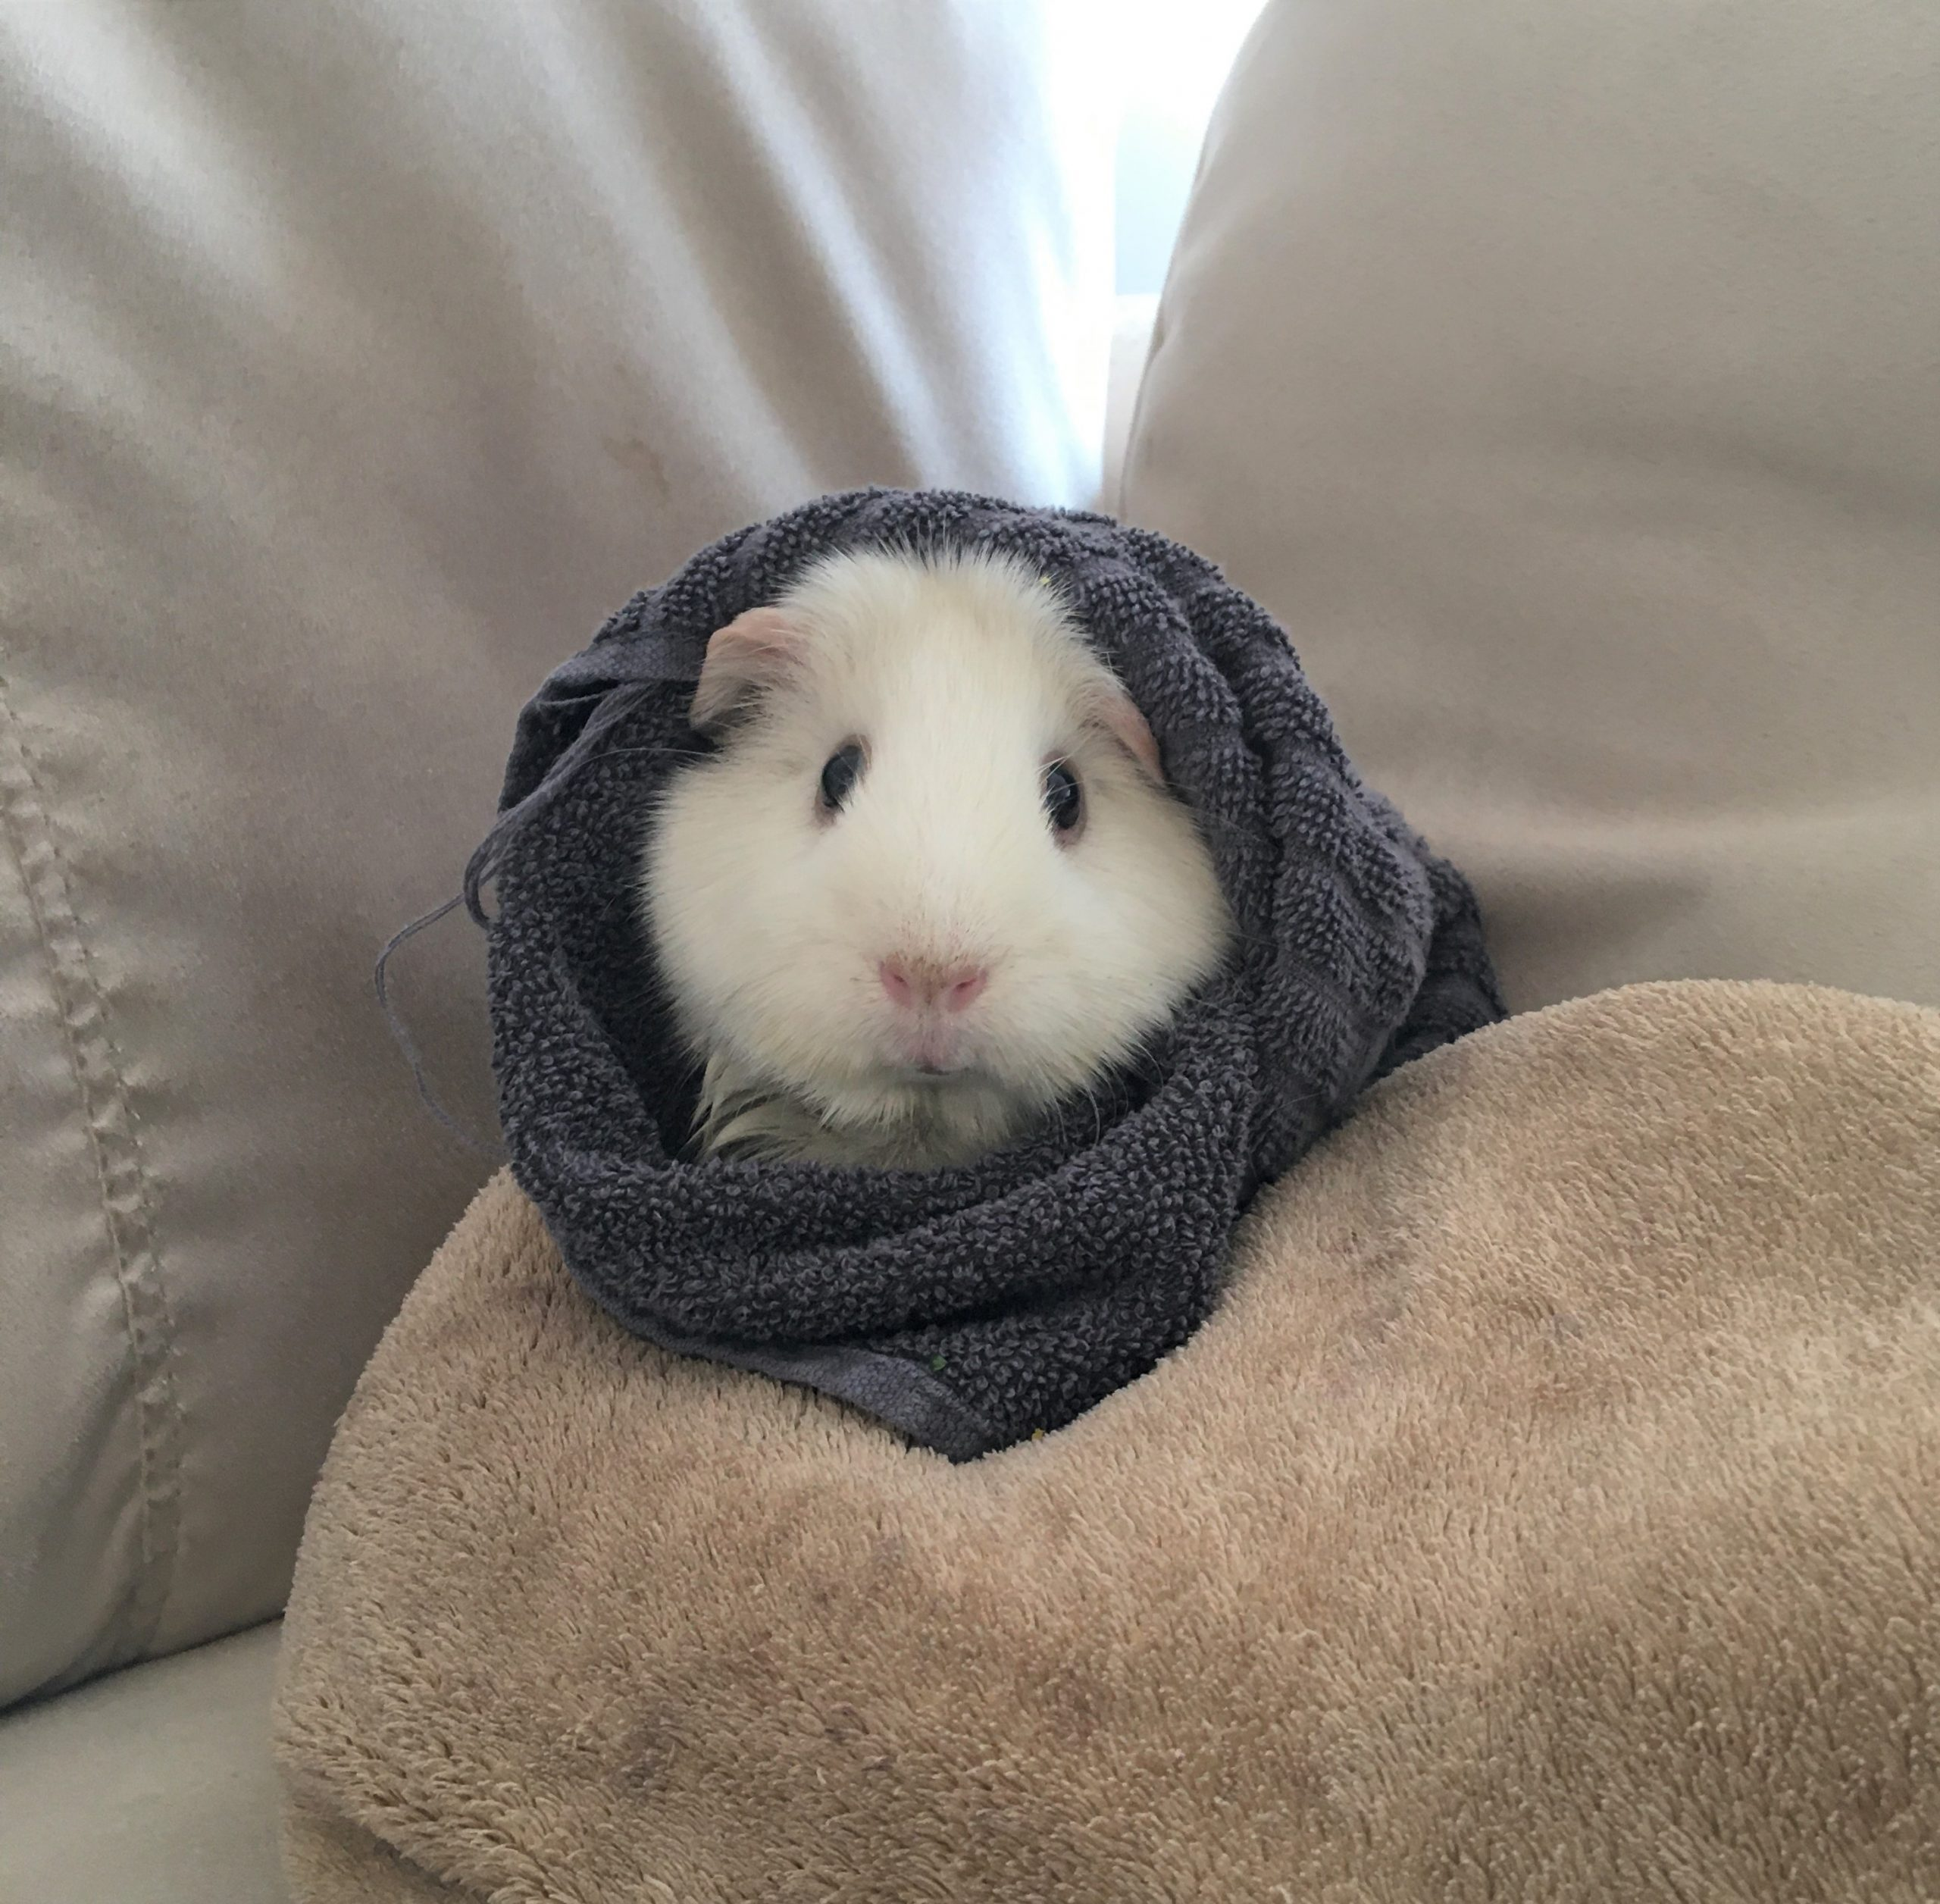 guinea pig wrapped up warm and cozy